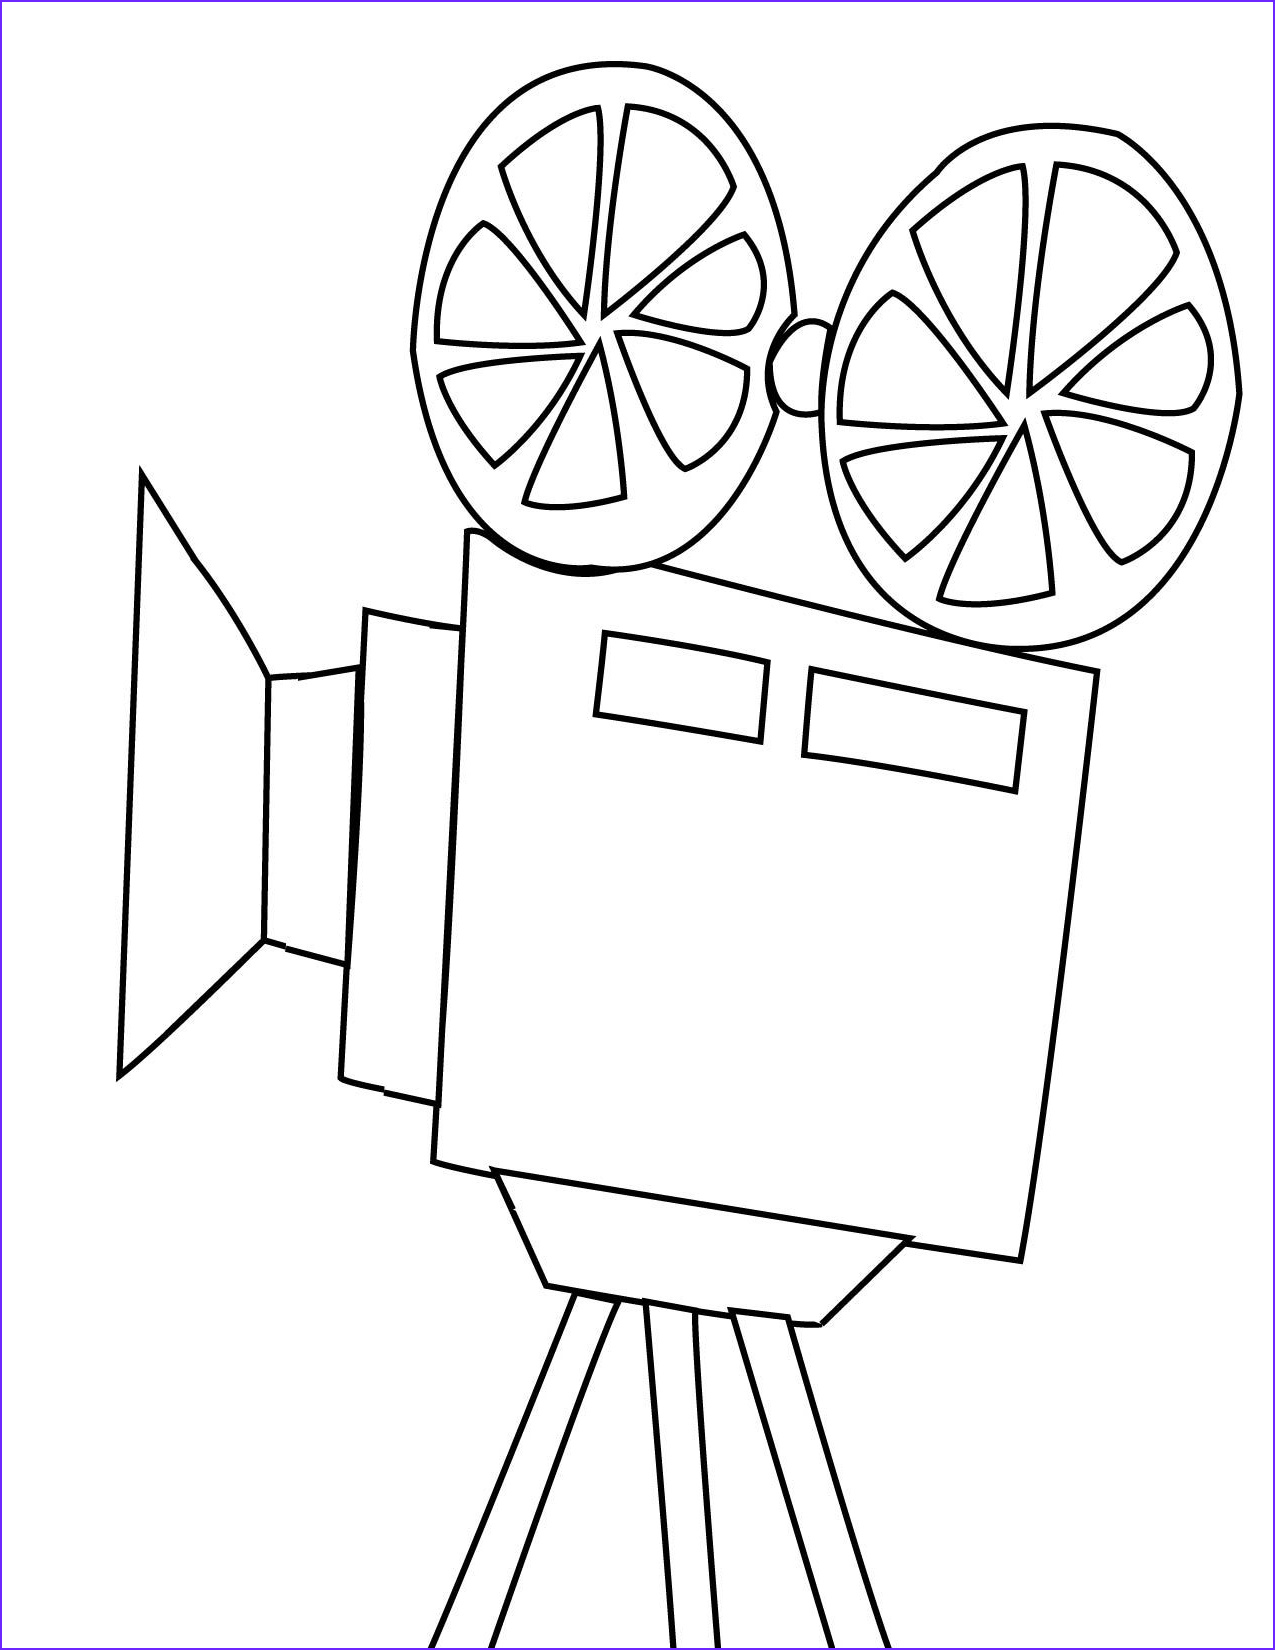 Movie Coloring Pages Luxury Photography Movie Projector Embroidery Pinterest